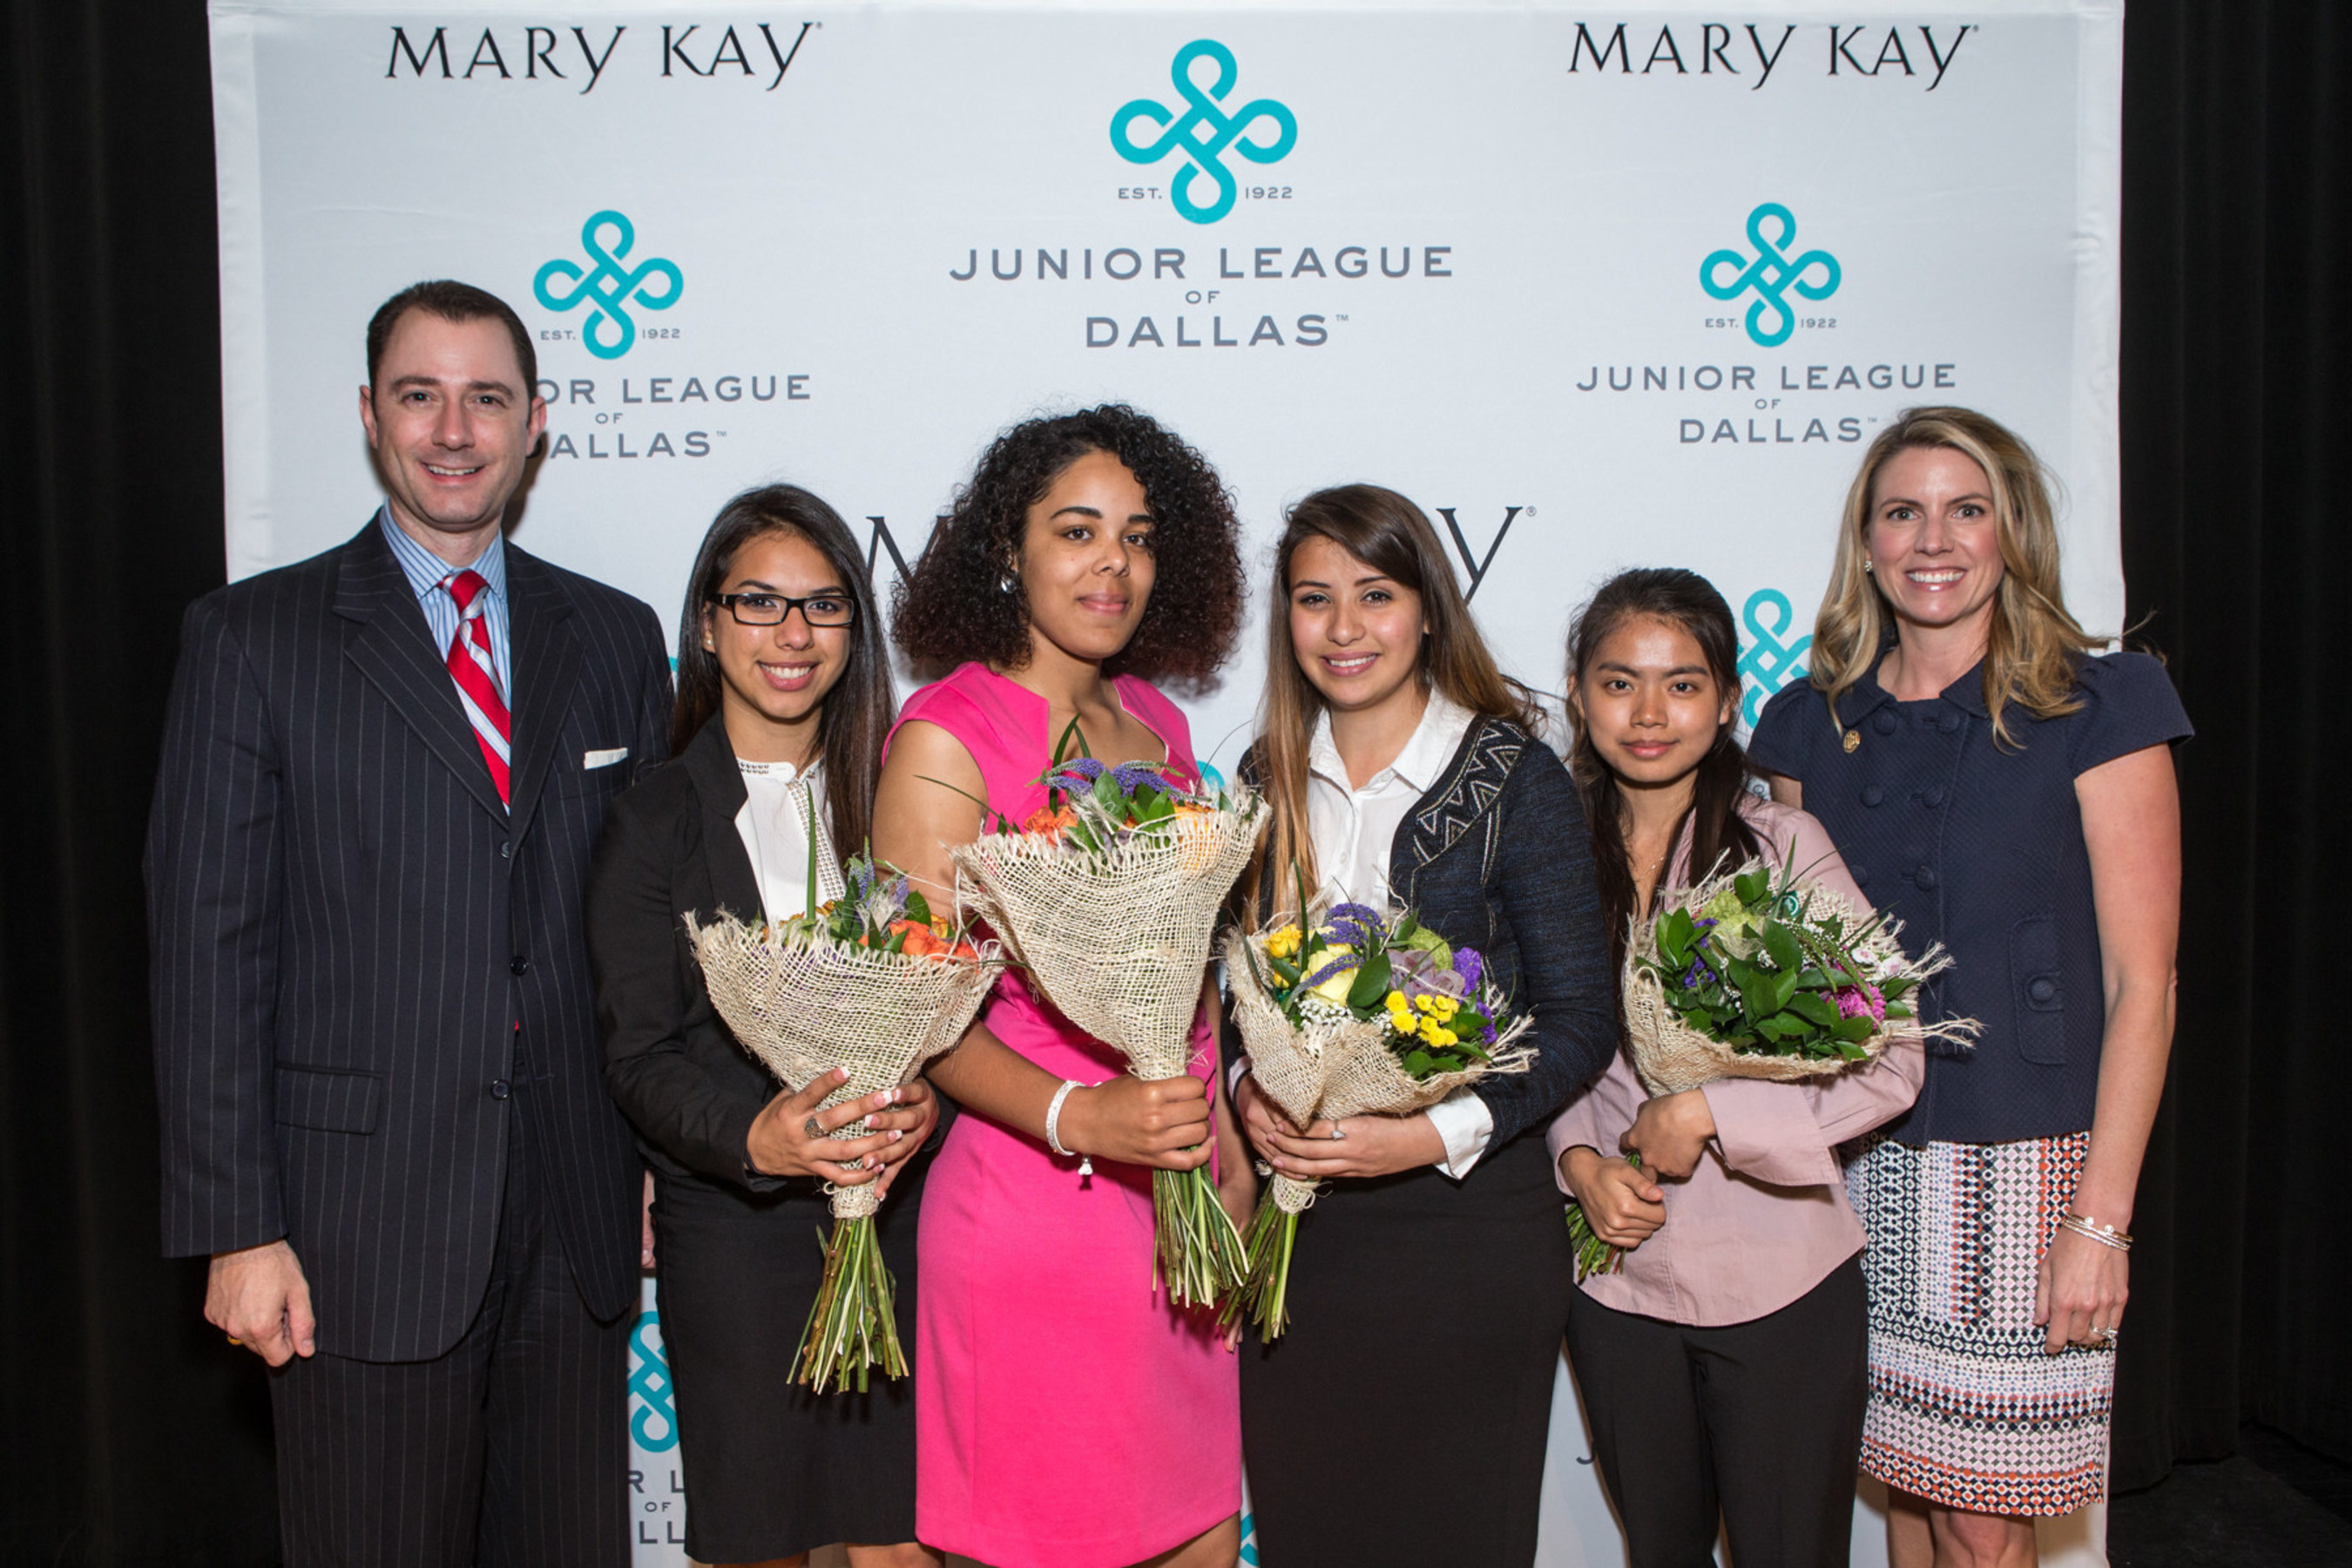 Four deserving Dallas Independent School District high school seniors are one step closer to pursuing their dreams of higher education as the Junior League of Dallas (JLD) and Mary Kay Inc. announce the recipients of the second annual Women LEAD (Learn • Excel • Achieve • Dream) Scholarship Program.